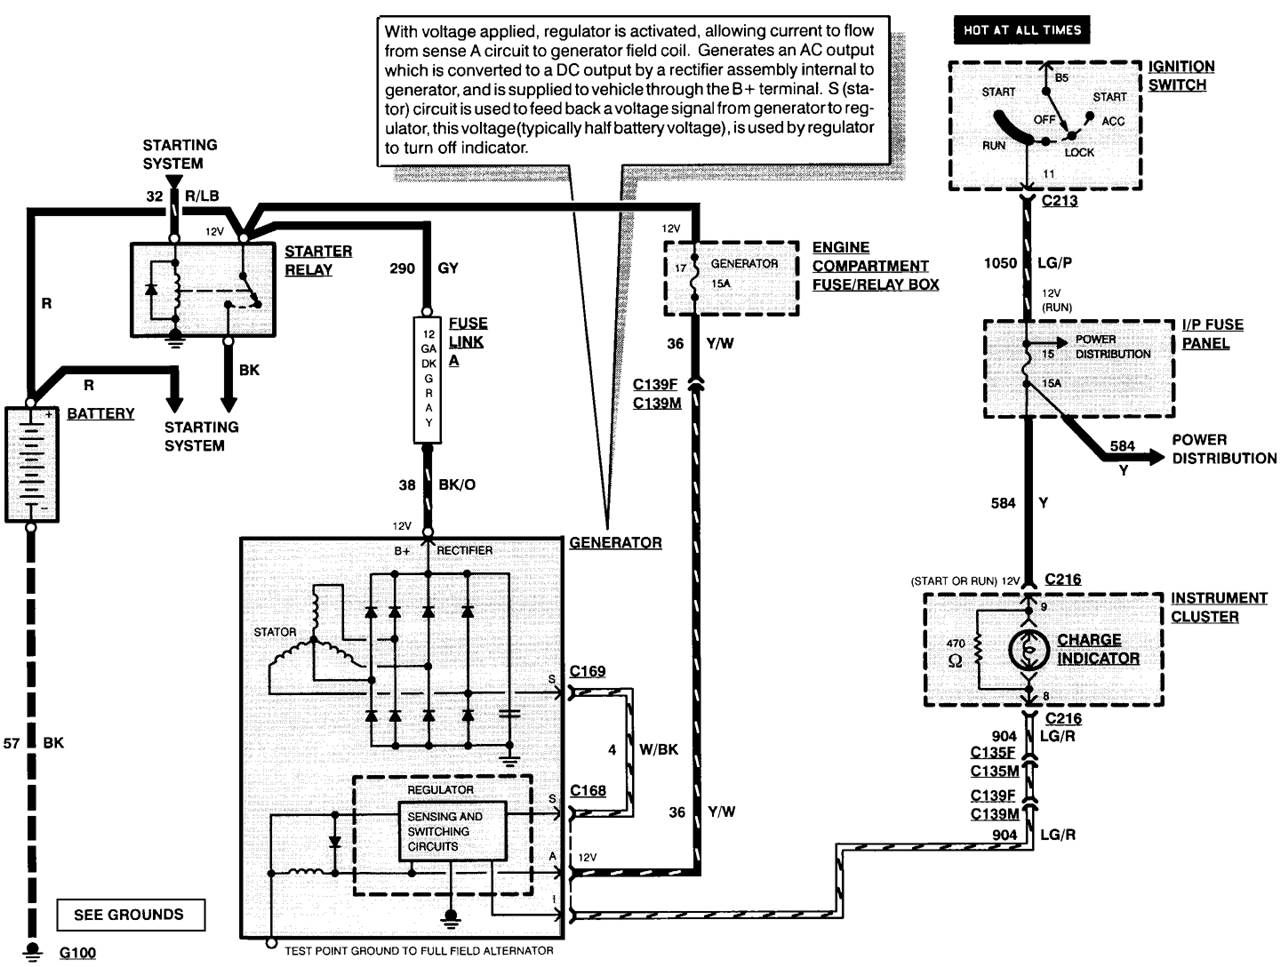 Ford alternator wiring diagram internal regulator ford alternator wiring diagrams carsut understand cars and wiring diagram of alternator circuit at fashall.co